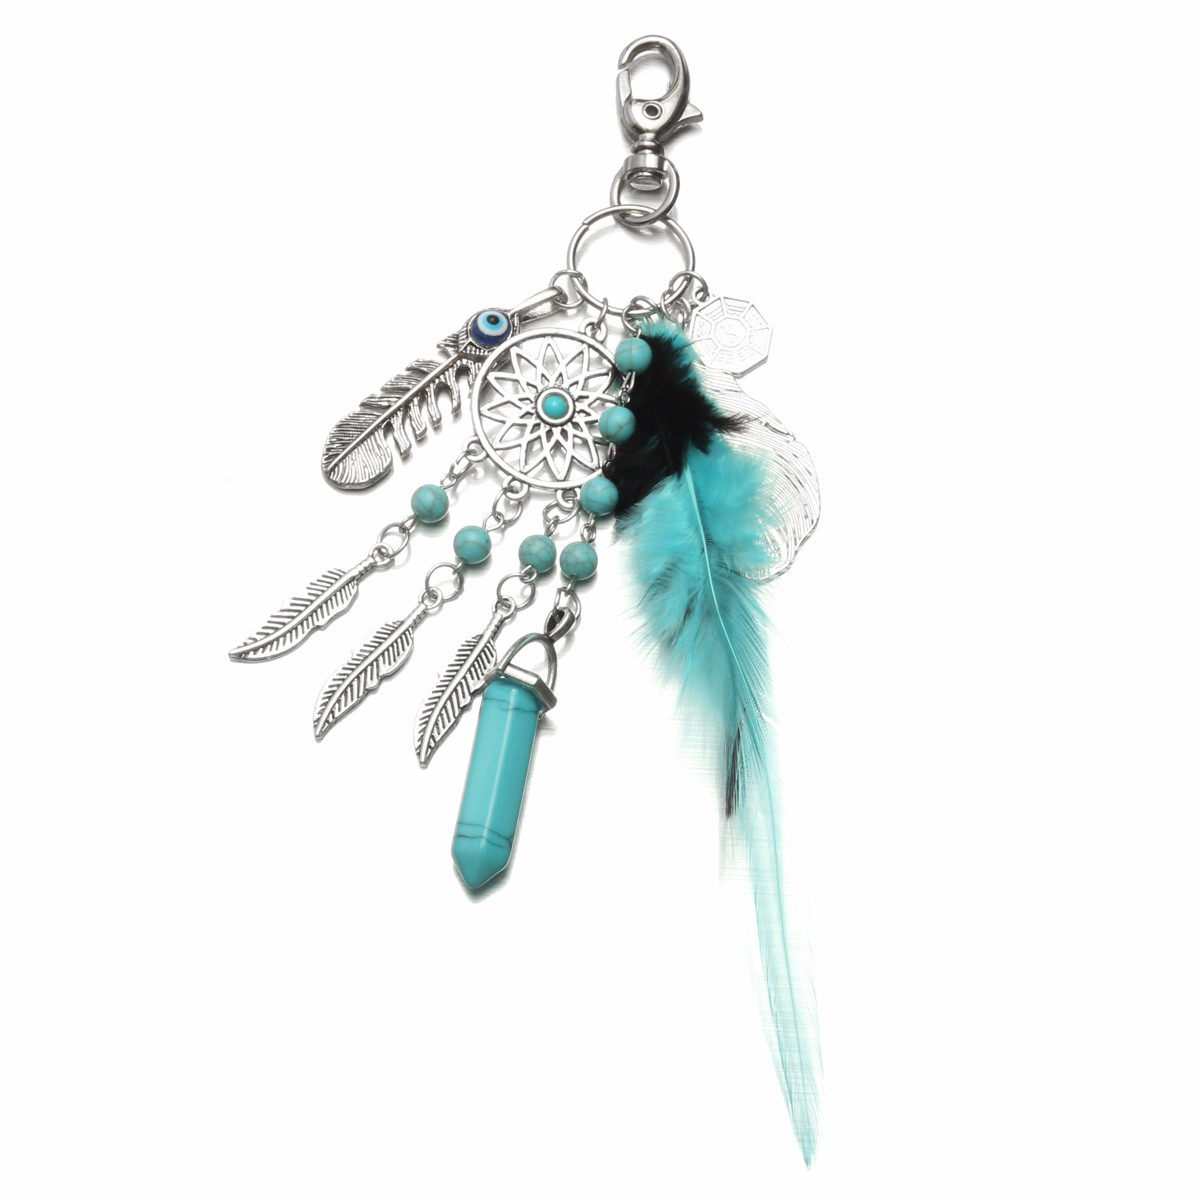 Tassel Feather Keychain Key Ring Bags Pendant